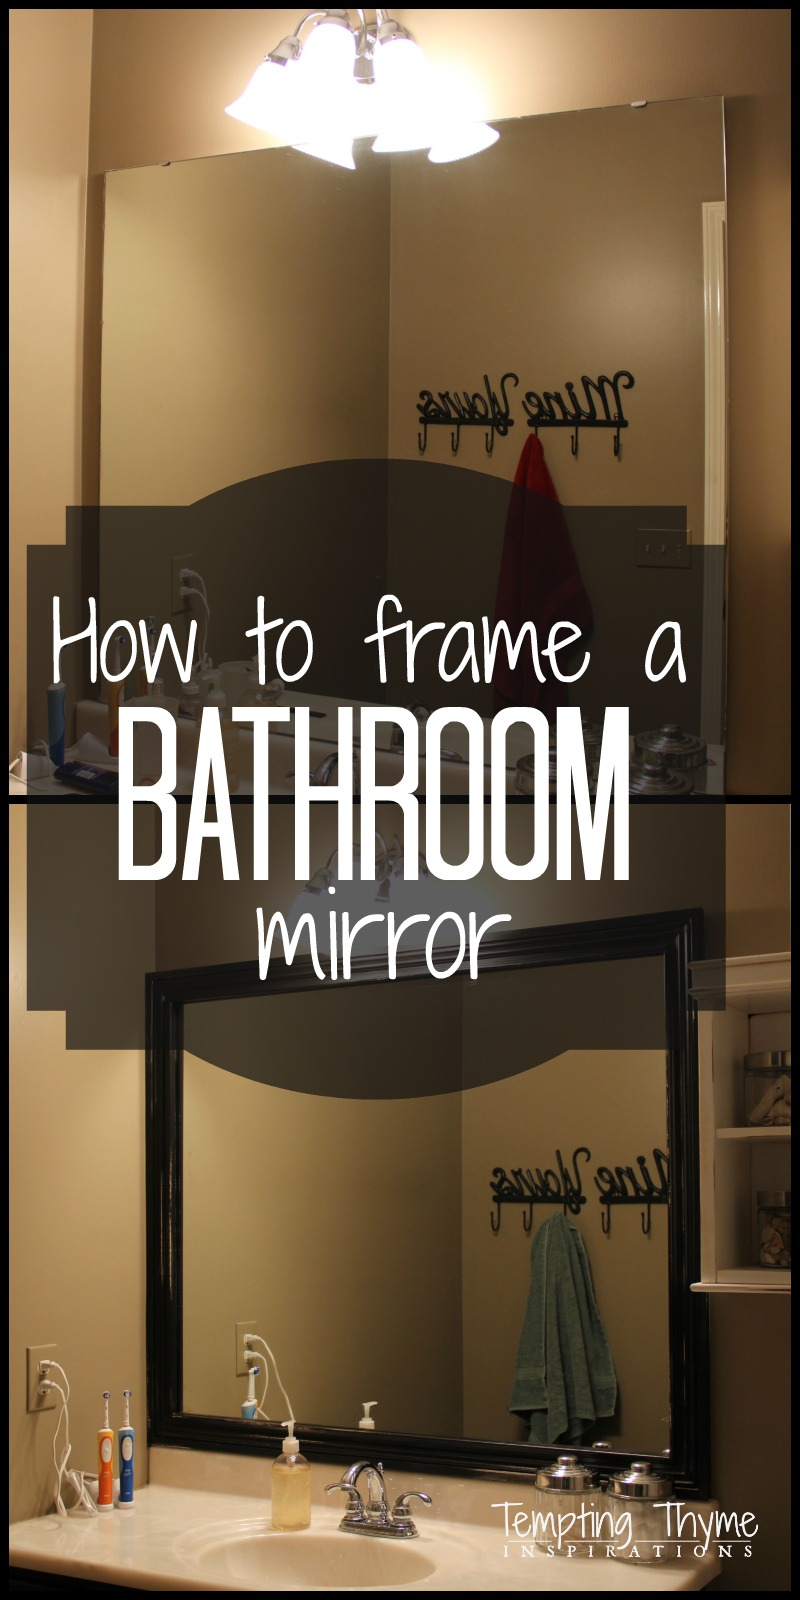 Framing a bathroom mirror tempting thyme for Easy home improvement projects